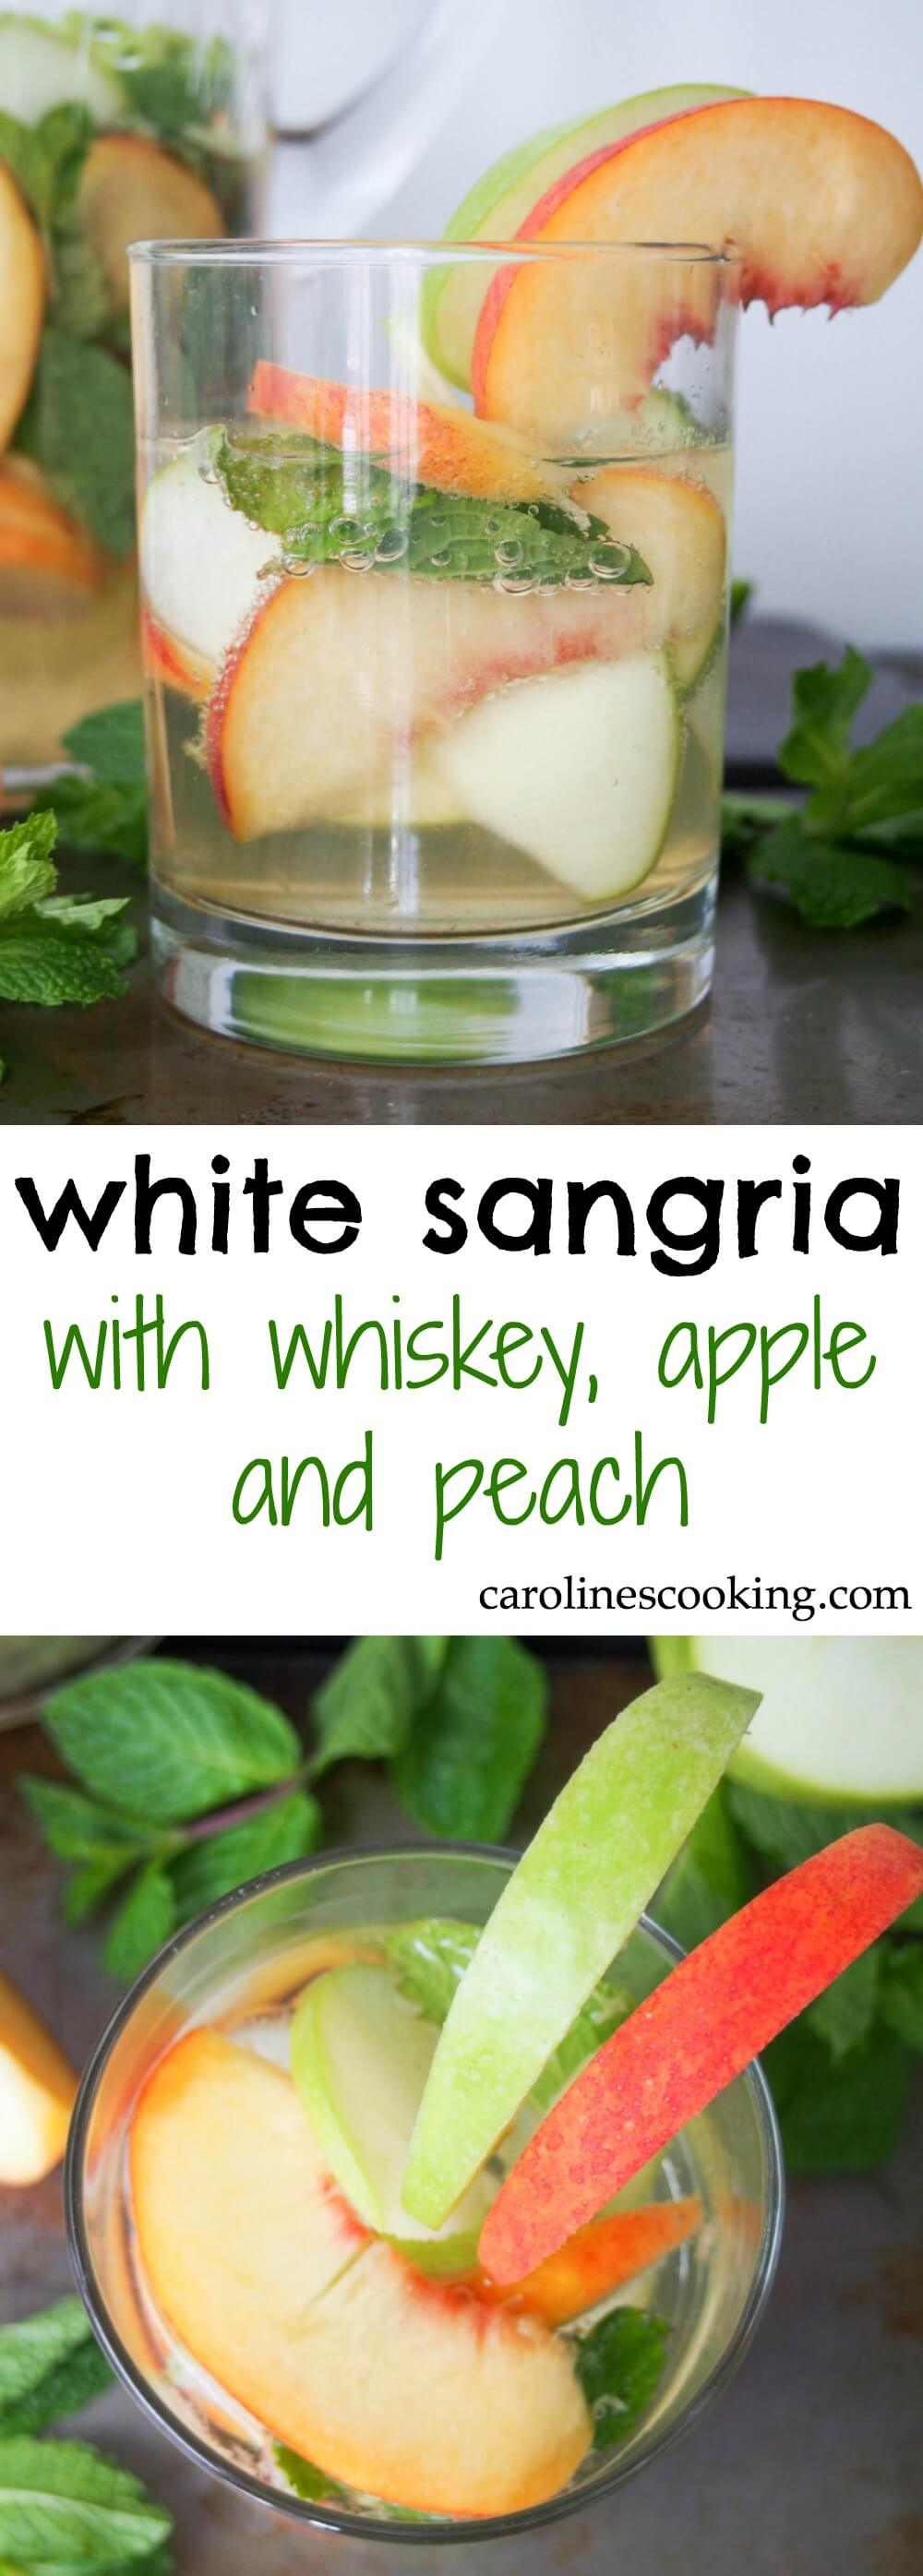 white sangria with whiskey, apple and peach - Gently sweet, fruity and with a lovely freshness from the mint, this white sangria is elegant and perfect for parties. IT'll become your go-to drink all summer! Also perfect colors for a less cliched St Patrick's Day cocktail.